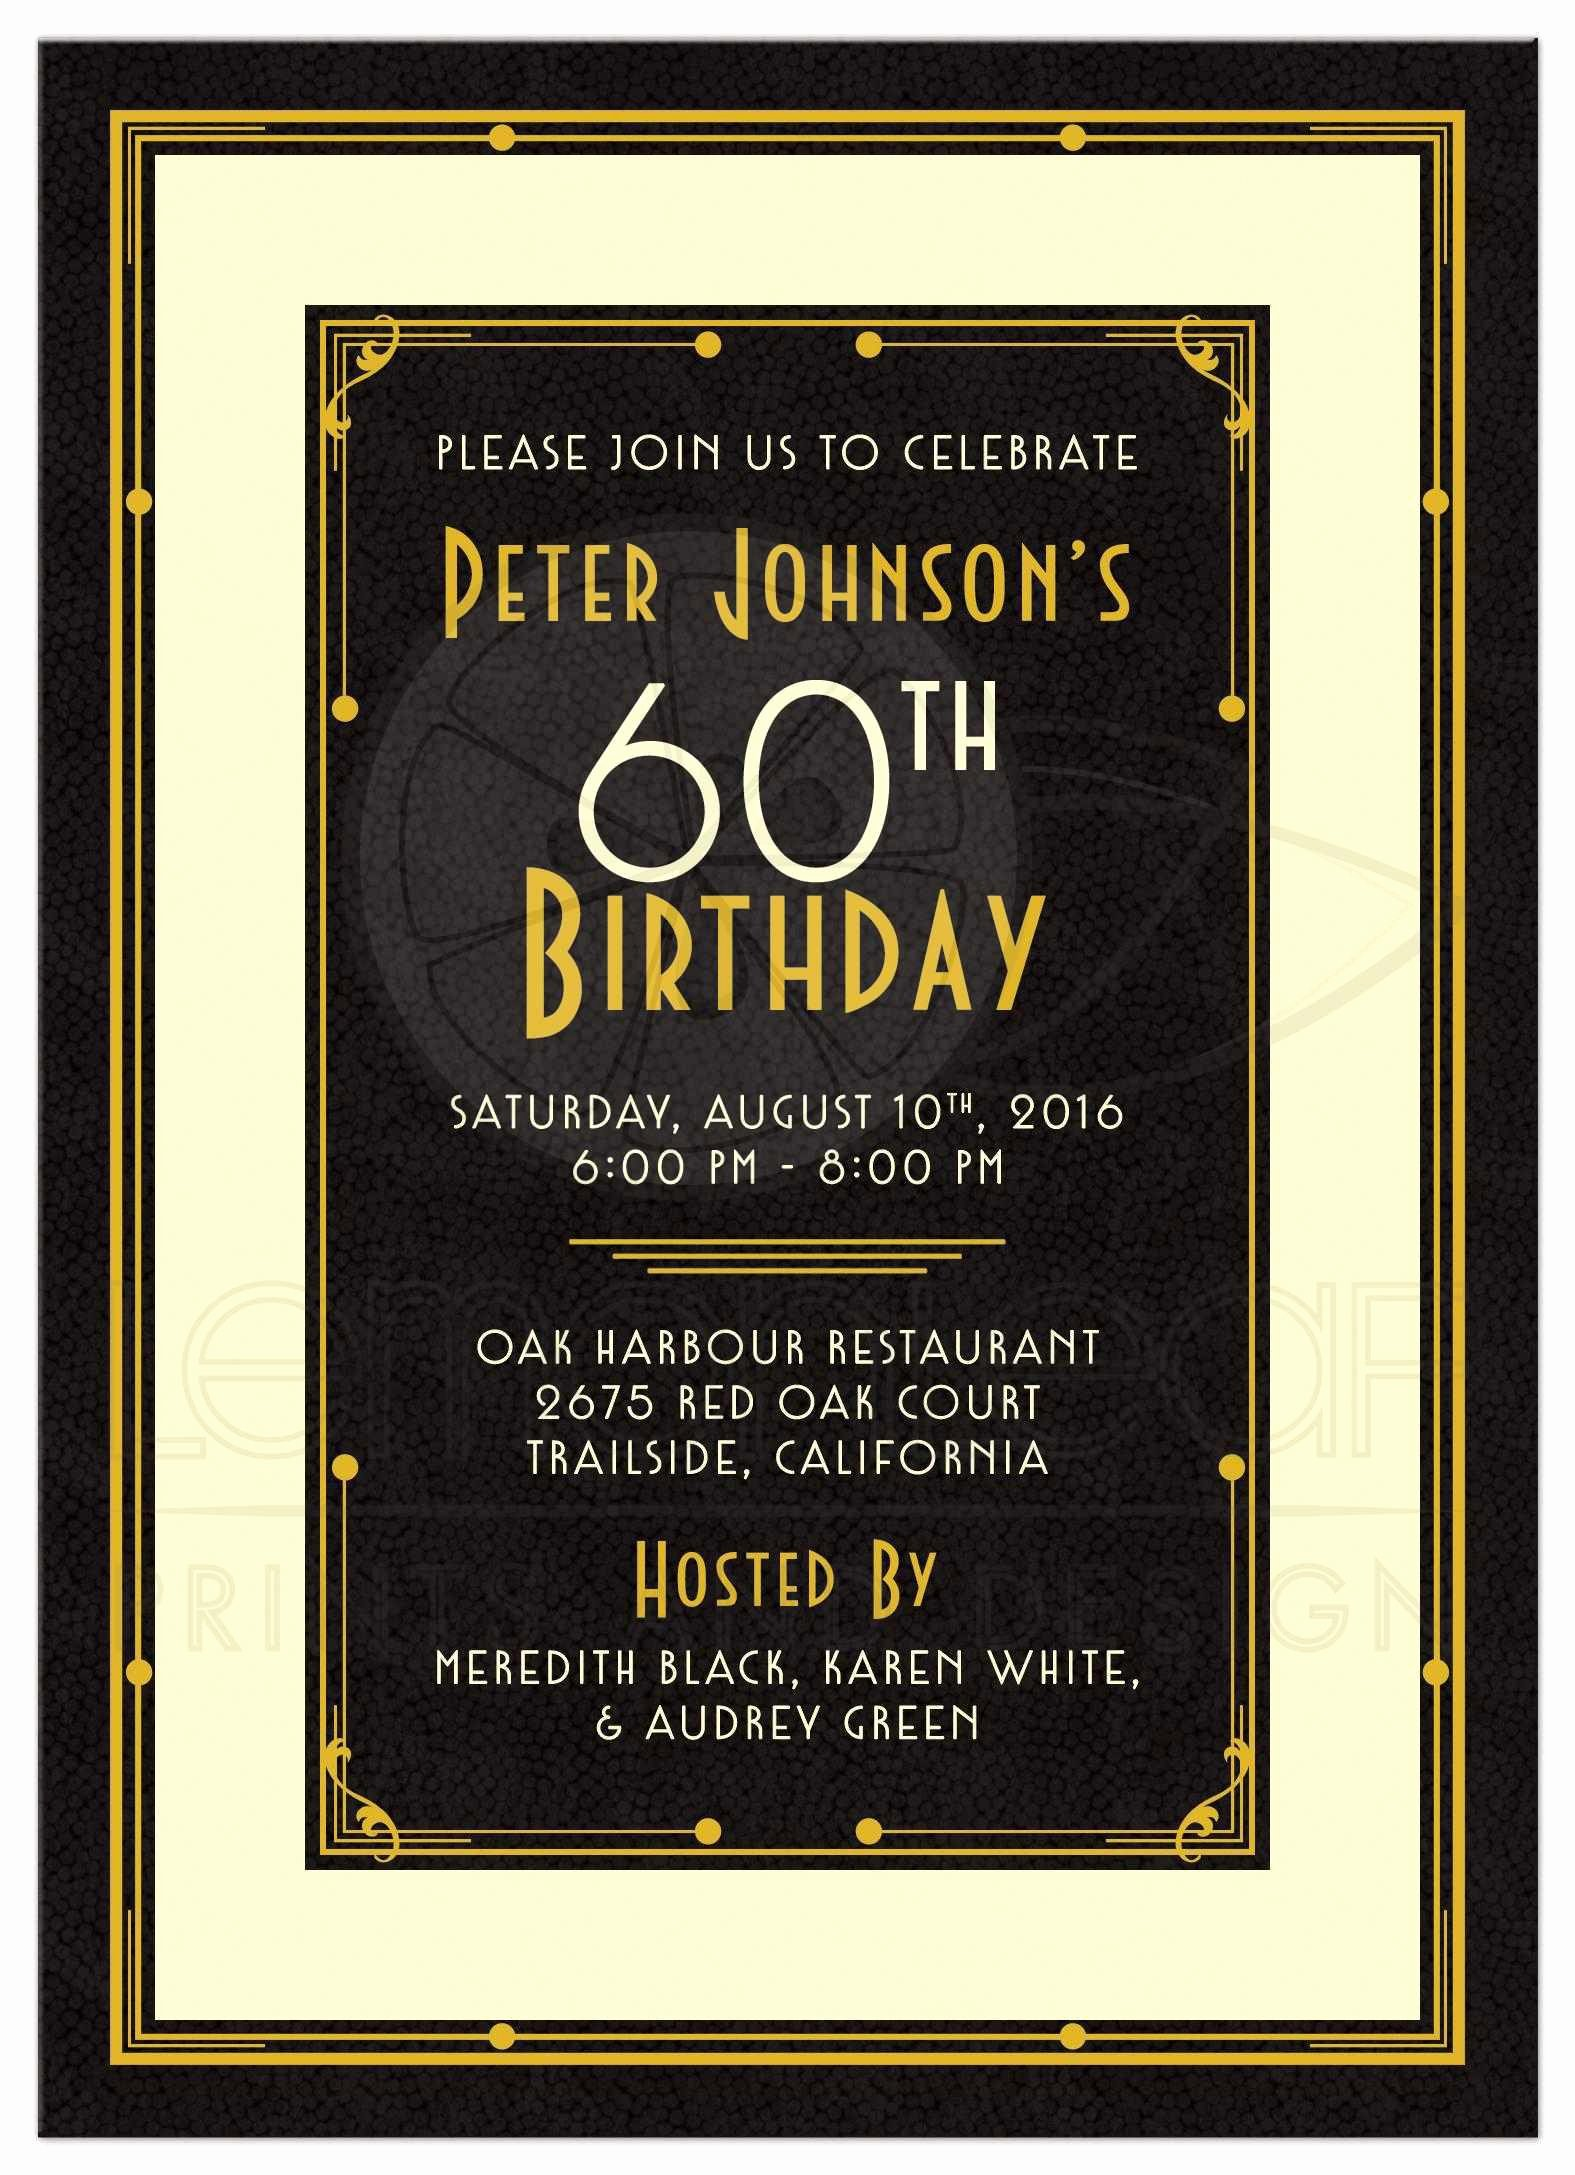 60th Birthday Invitation Template Awesome 60th Birthday Party Invitations